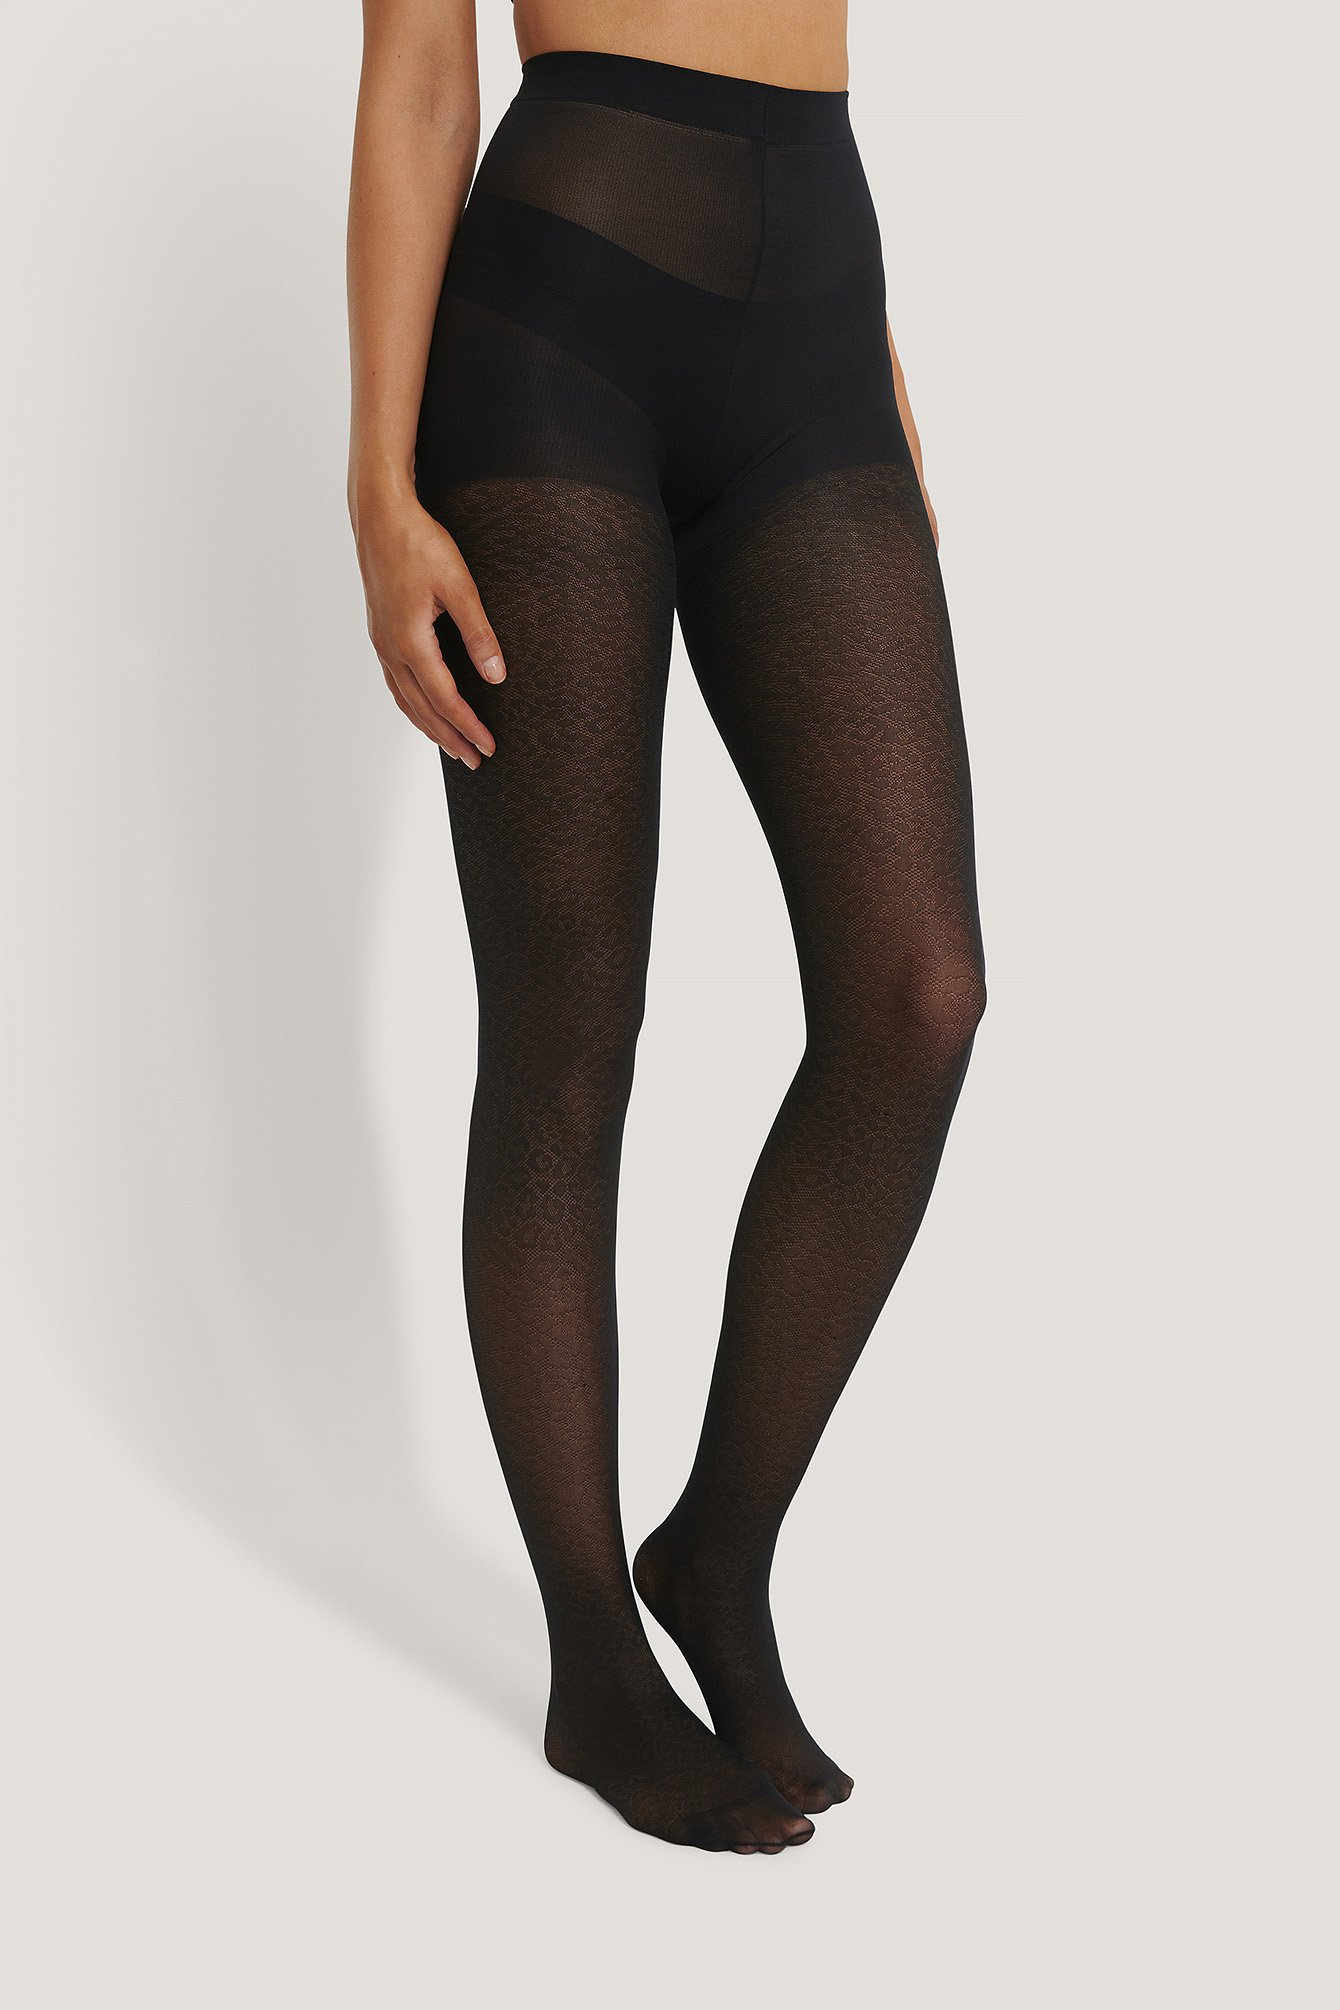 Black Recycled Tights